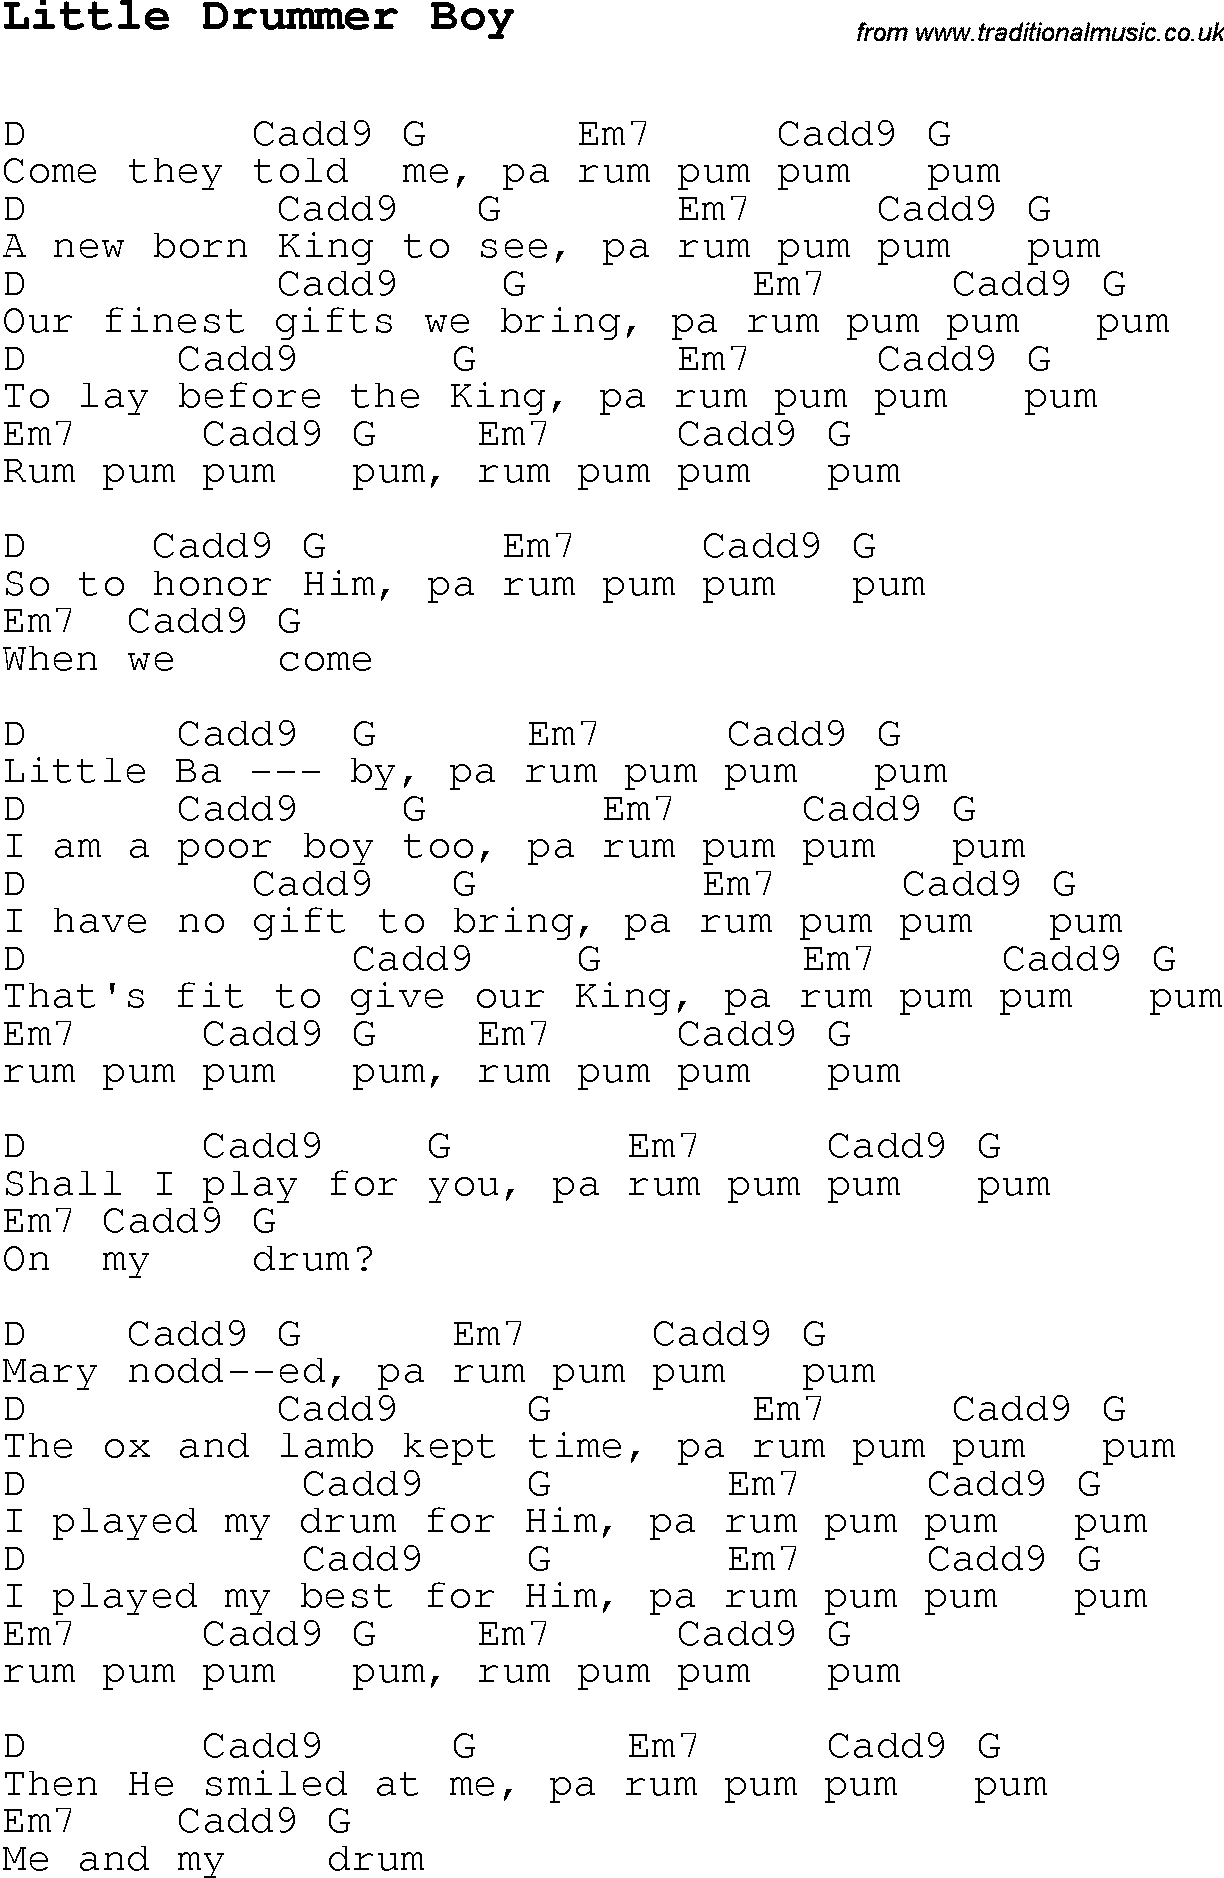 Christmas Carol/Song lyrics with chords for Little Drummer Boy